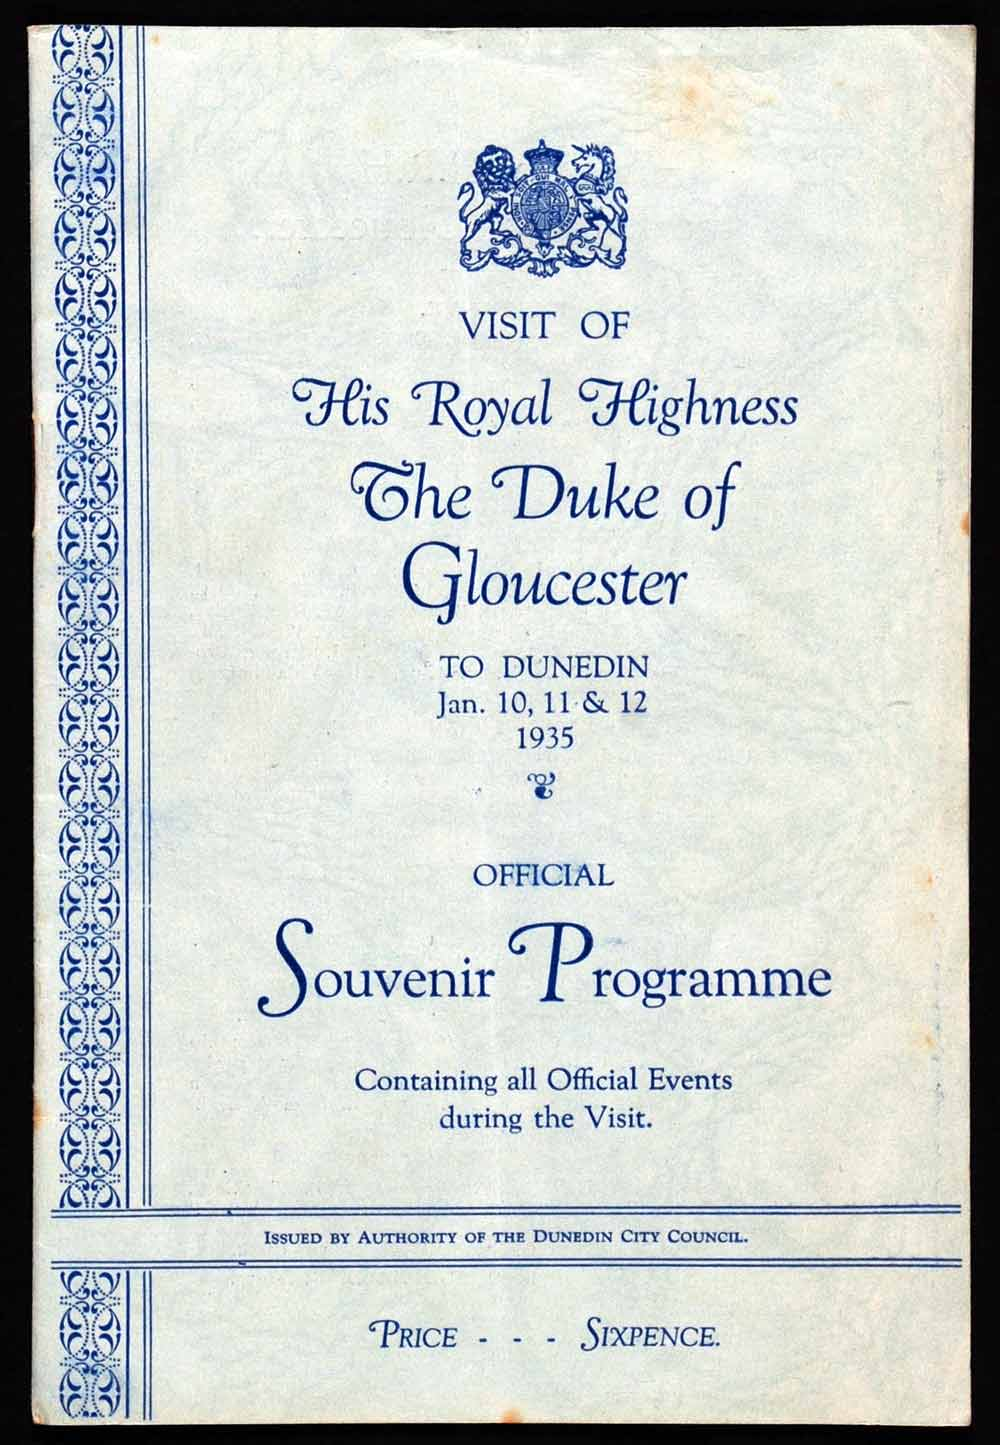 Official souvenir programme; visit of His Royal Highness the Duke of Gloucester to Dunedin, Jan. 10, 11 & 12 1935. Dunedin: Dunedin City Council, printed by Otago Daily Times Print, [1935].